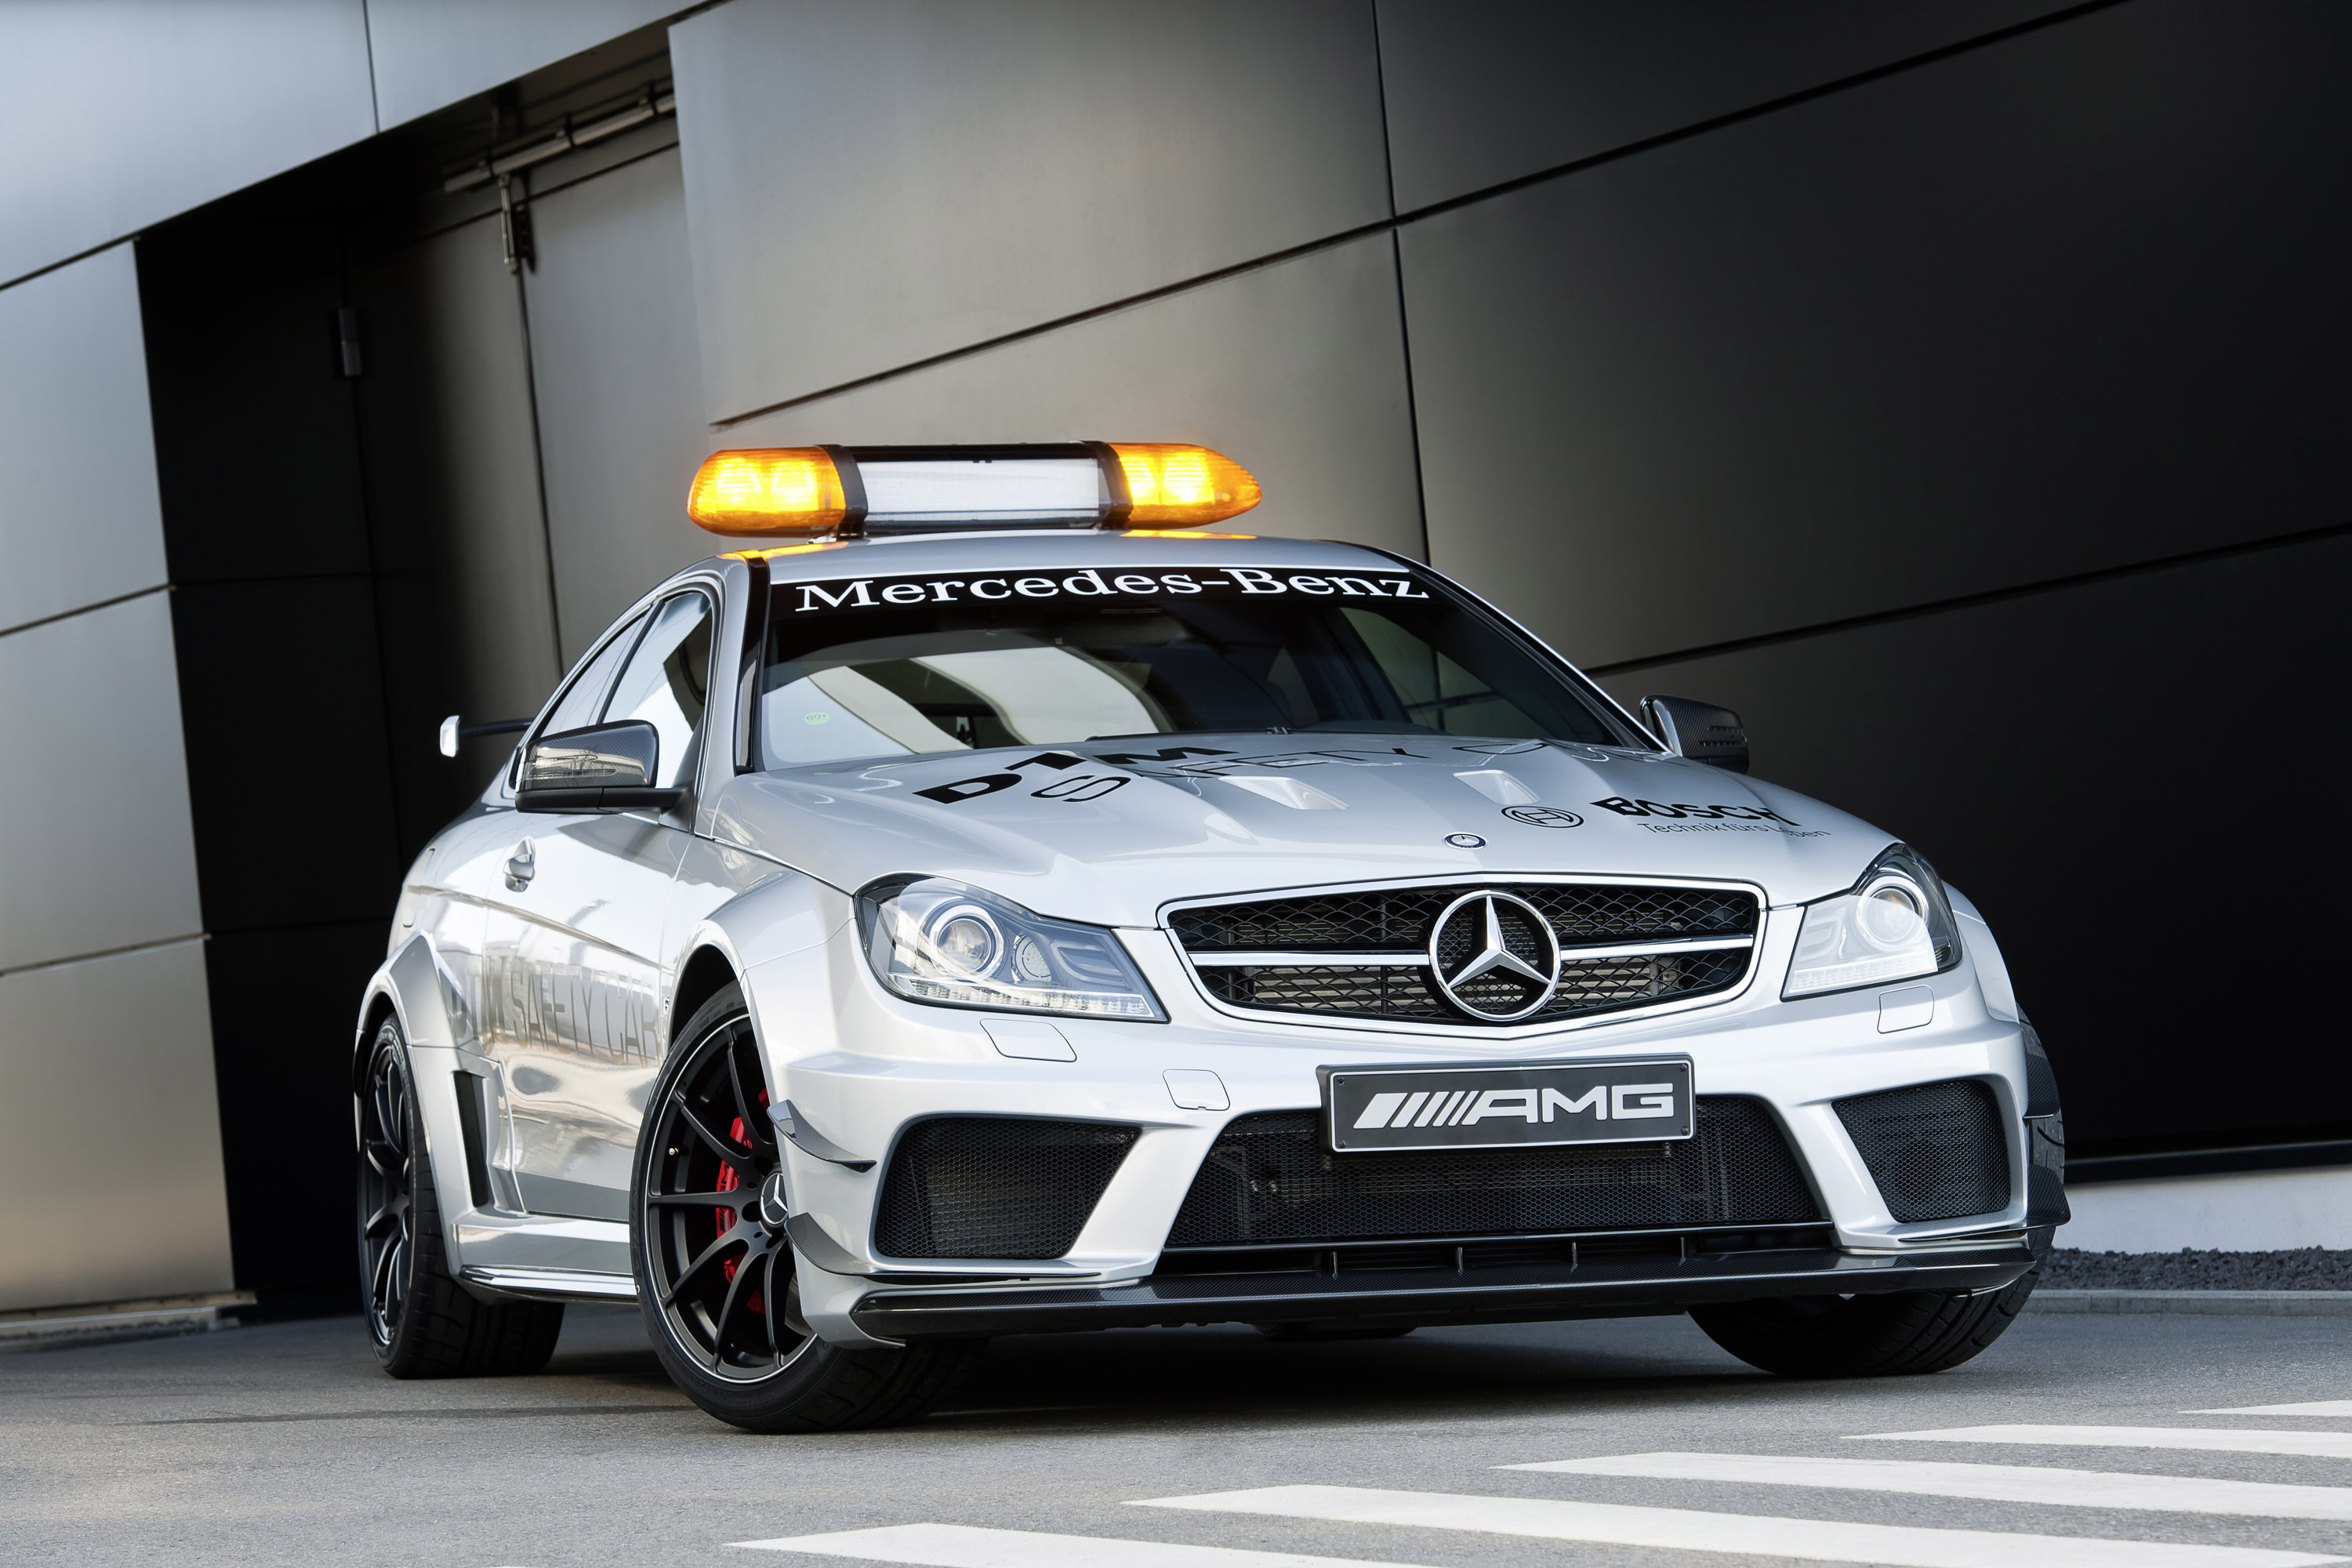 2013 Mercedes C63 Amg Black Series Dtm Safety Car Review